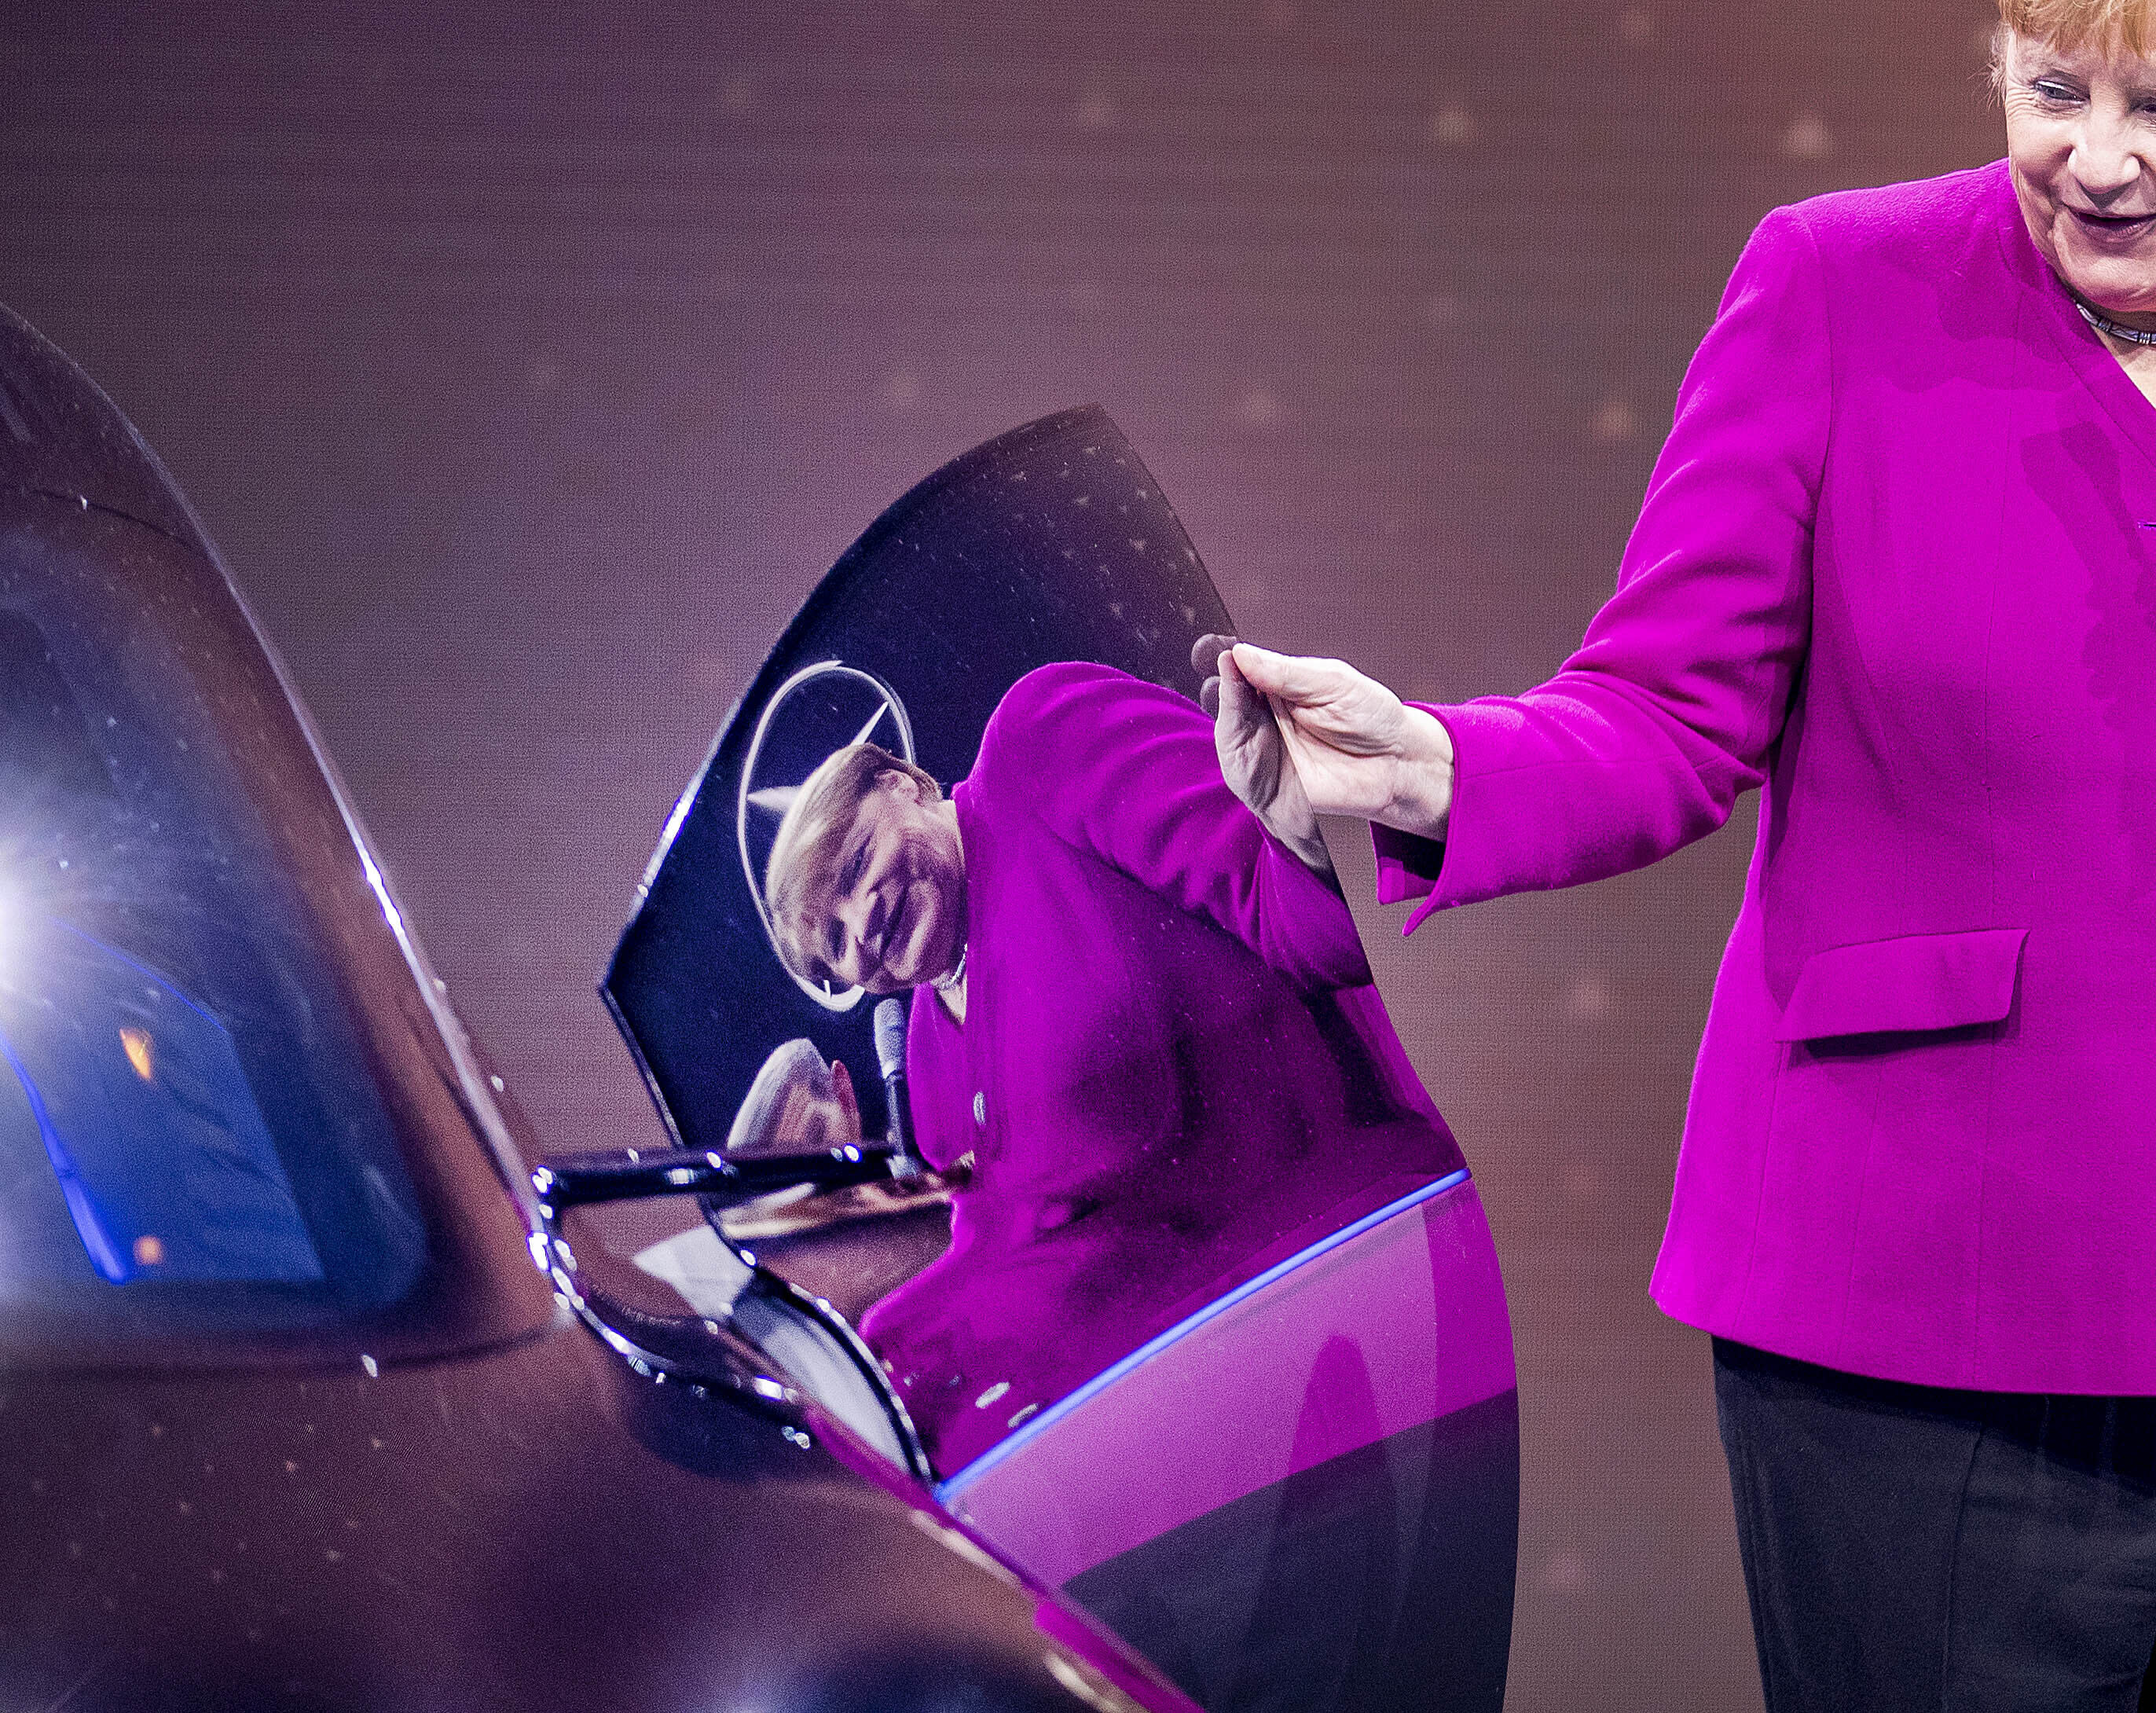 German Chancellor Angela Merkel is reflected in a door of a Mercedes during her visit to the IAA Auto Show in Frankfurt, Germany, Thursday, Sept. 12, 2019. (AP Photo/Michael Probst)